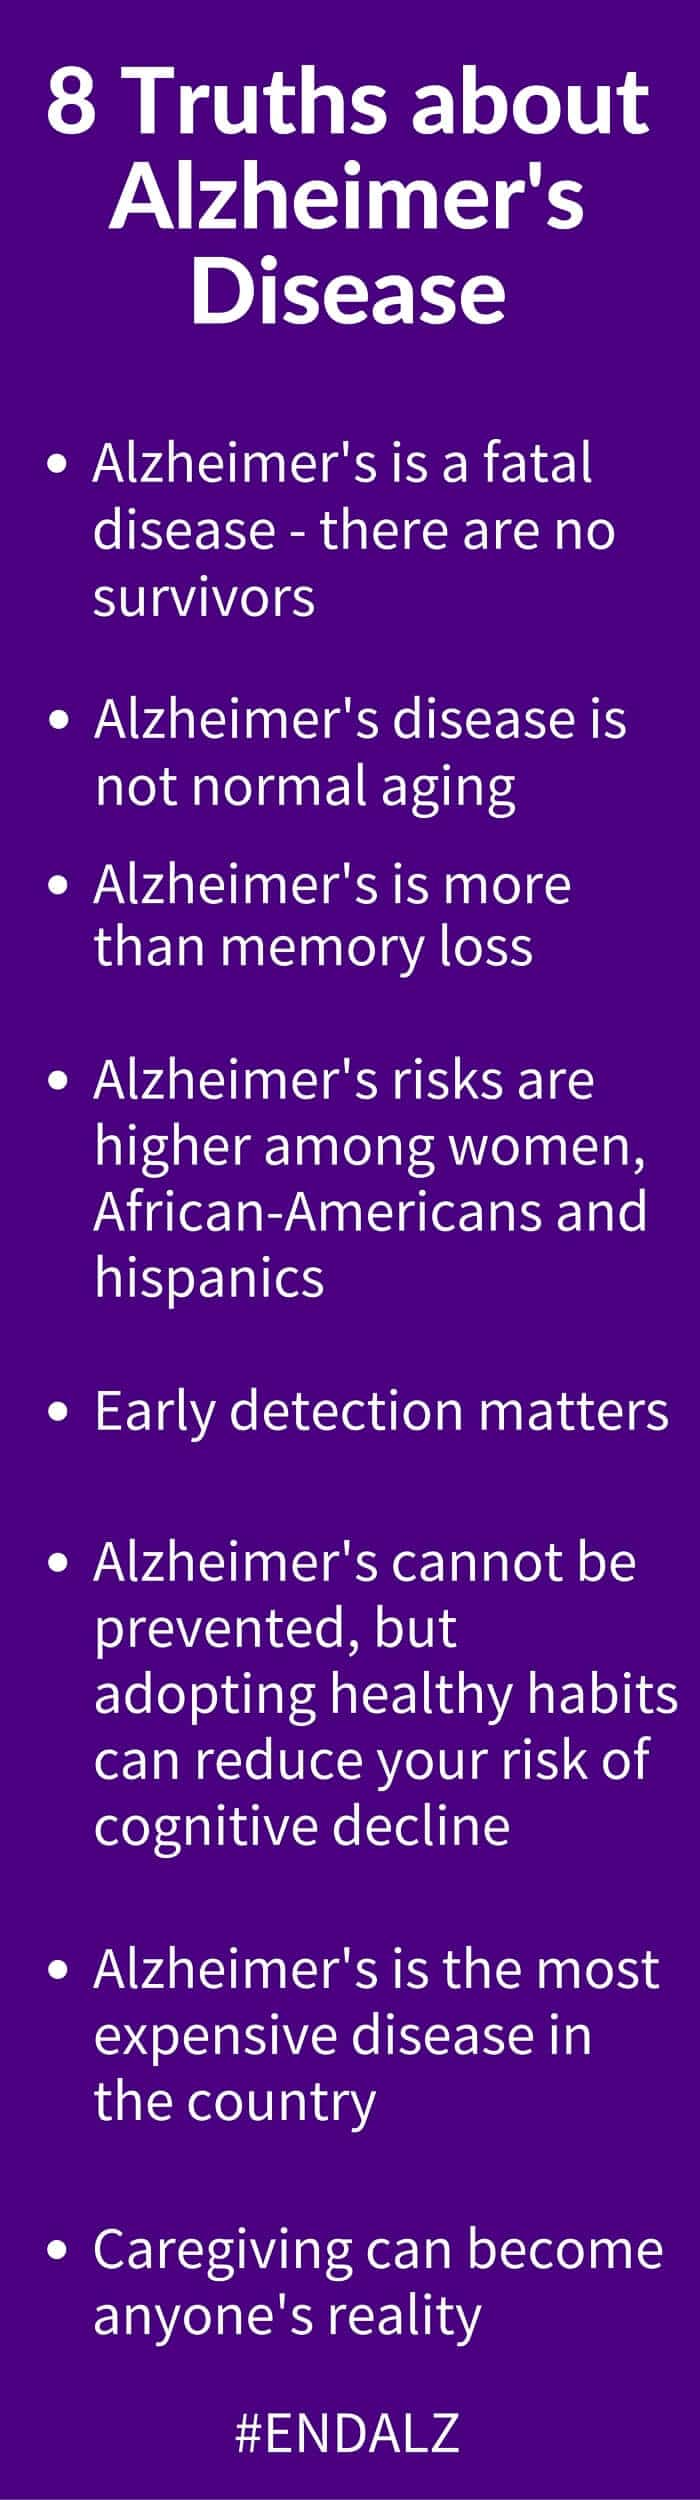 8 Truths about Alzheimer's Disease - - help end Alzheimer's Disease by learning the truth about this disease